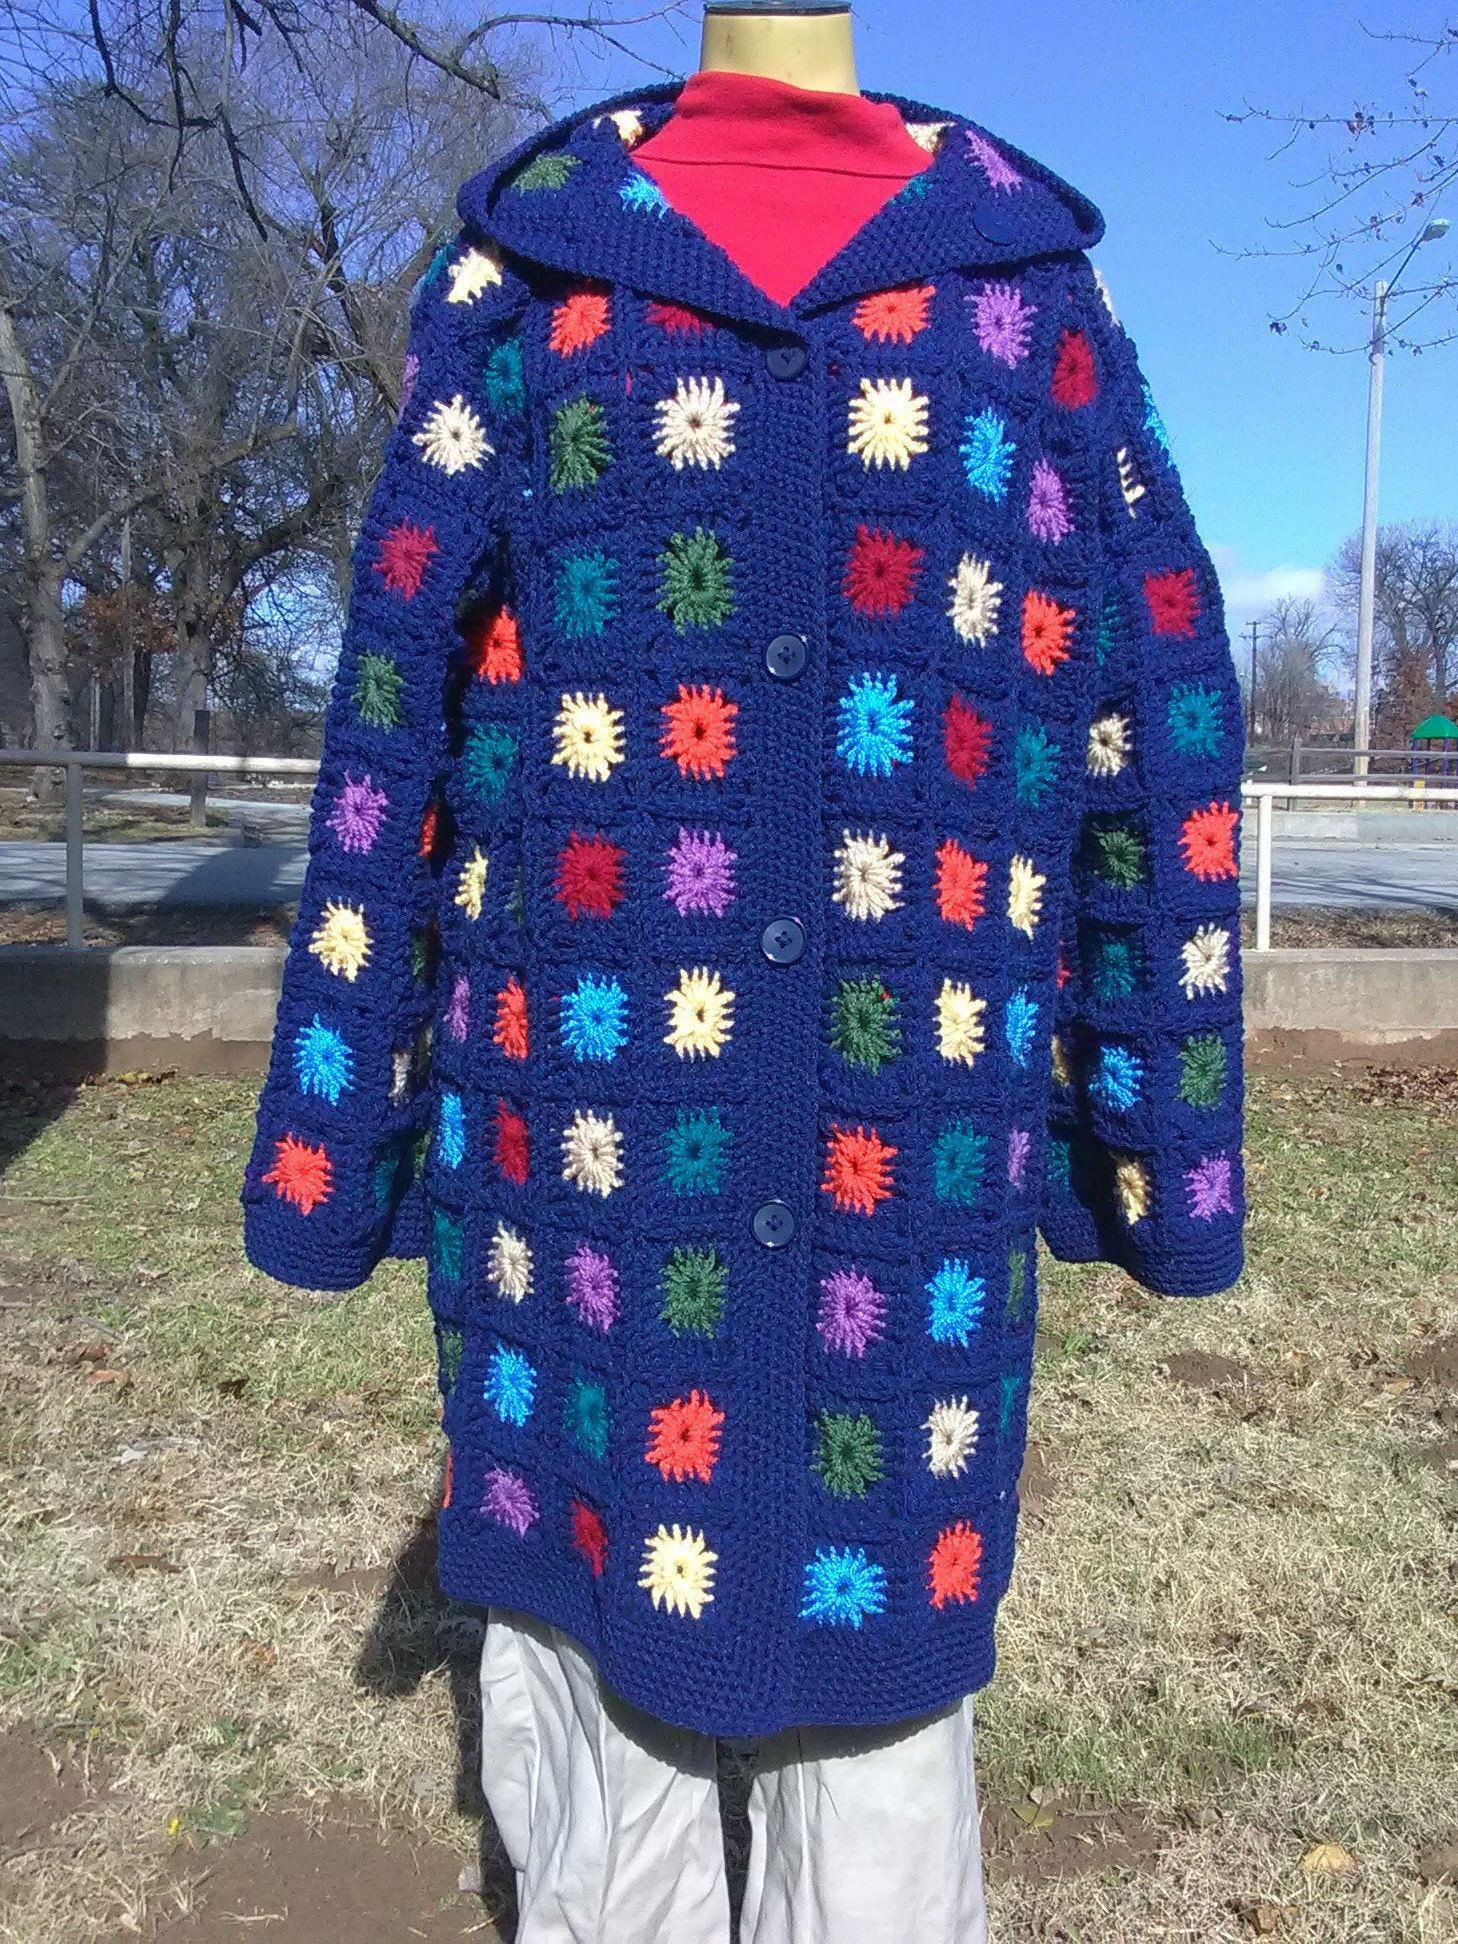 Granny Square Coat with Hood ,Crochet Granny Square Multi- Size Sweater,Navy Granny Square Sweater Coat with Hood #grannysquareponcho